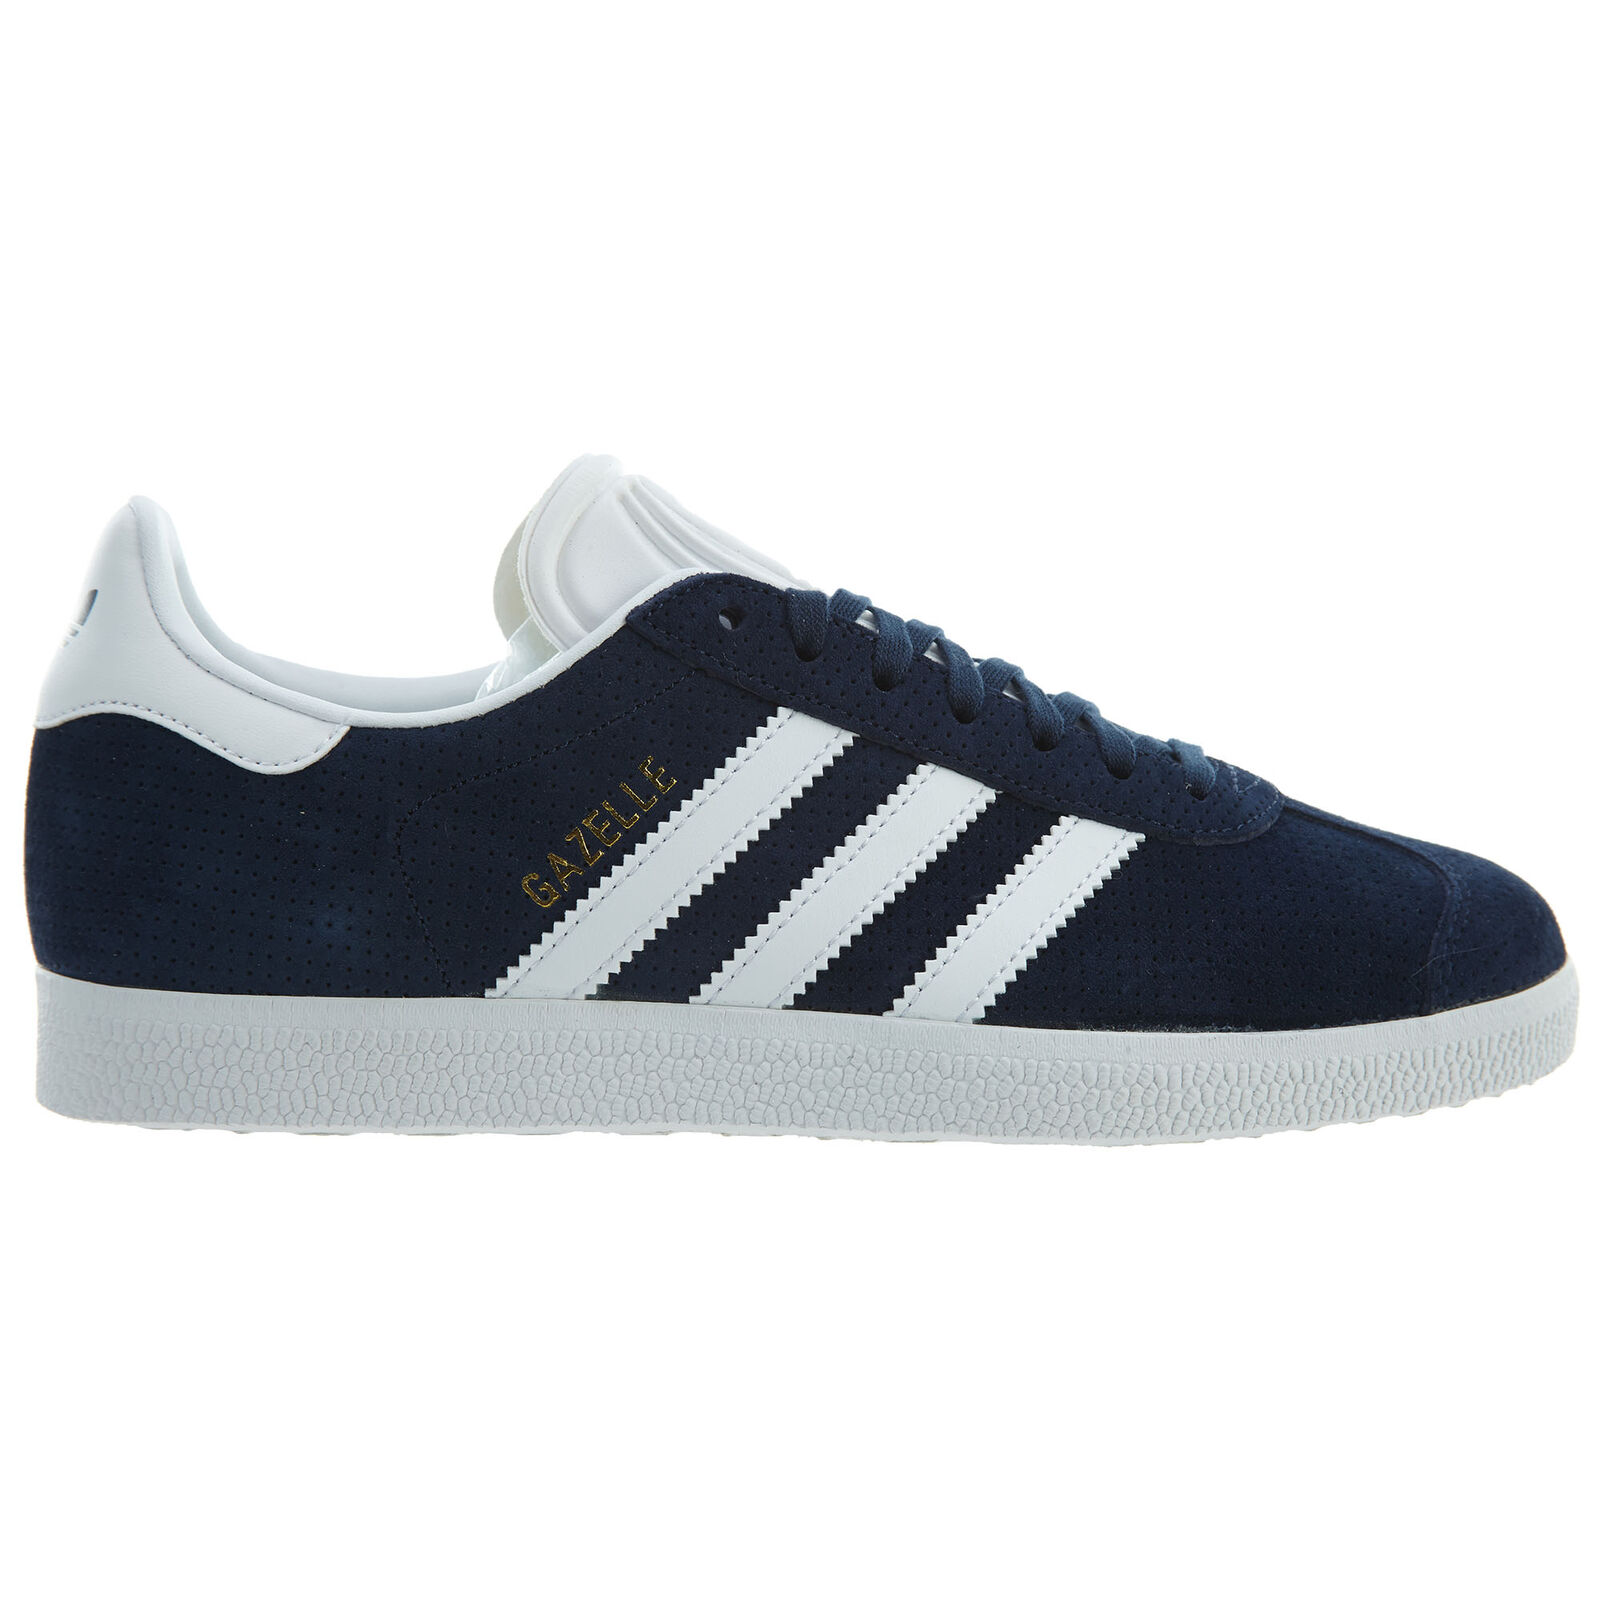 Adidas Gazelle Womens BY9359 Collegiate Navy White Pigskin Nubuck shoes Size 6